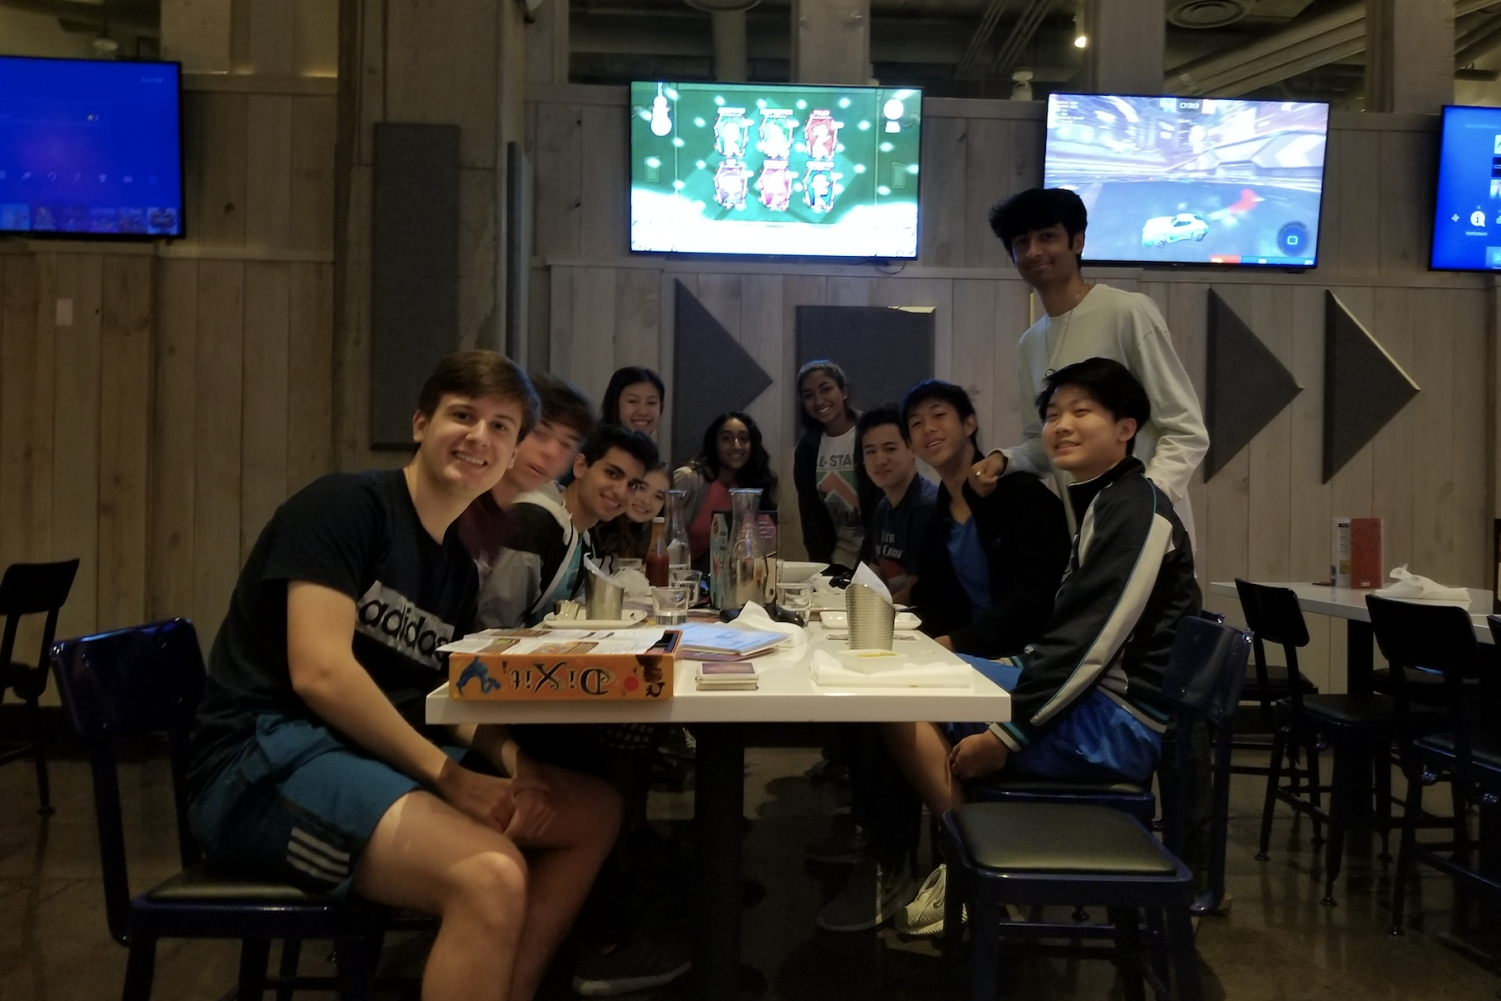 Orchestra seniors smile during their first social of the school year at Nerdvana Frisco on Nov. 9. With 21 seniors this year, the socials are a tradition of the program.